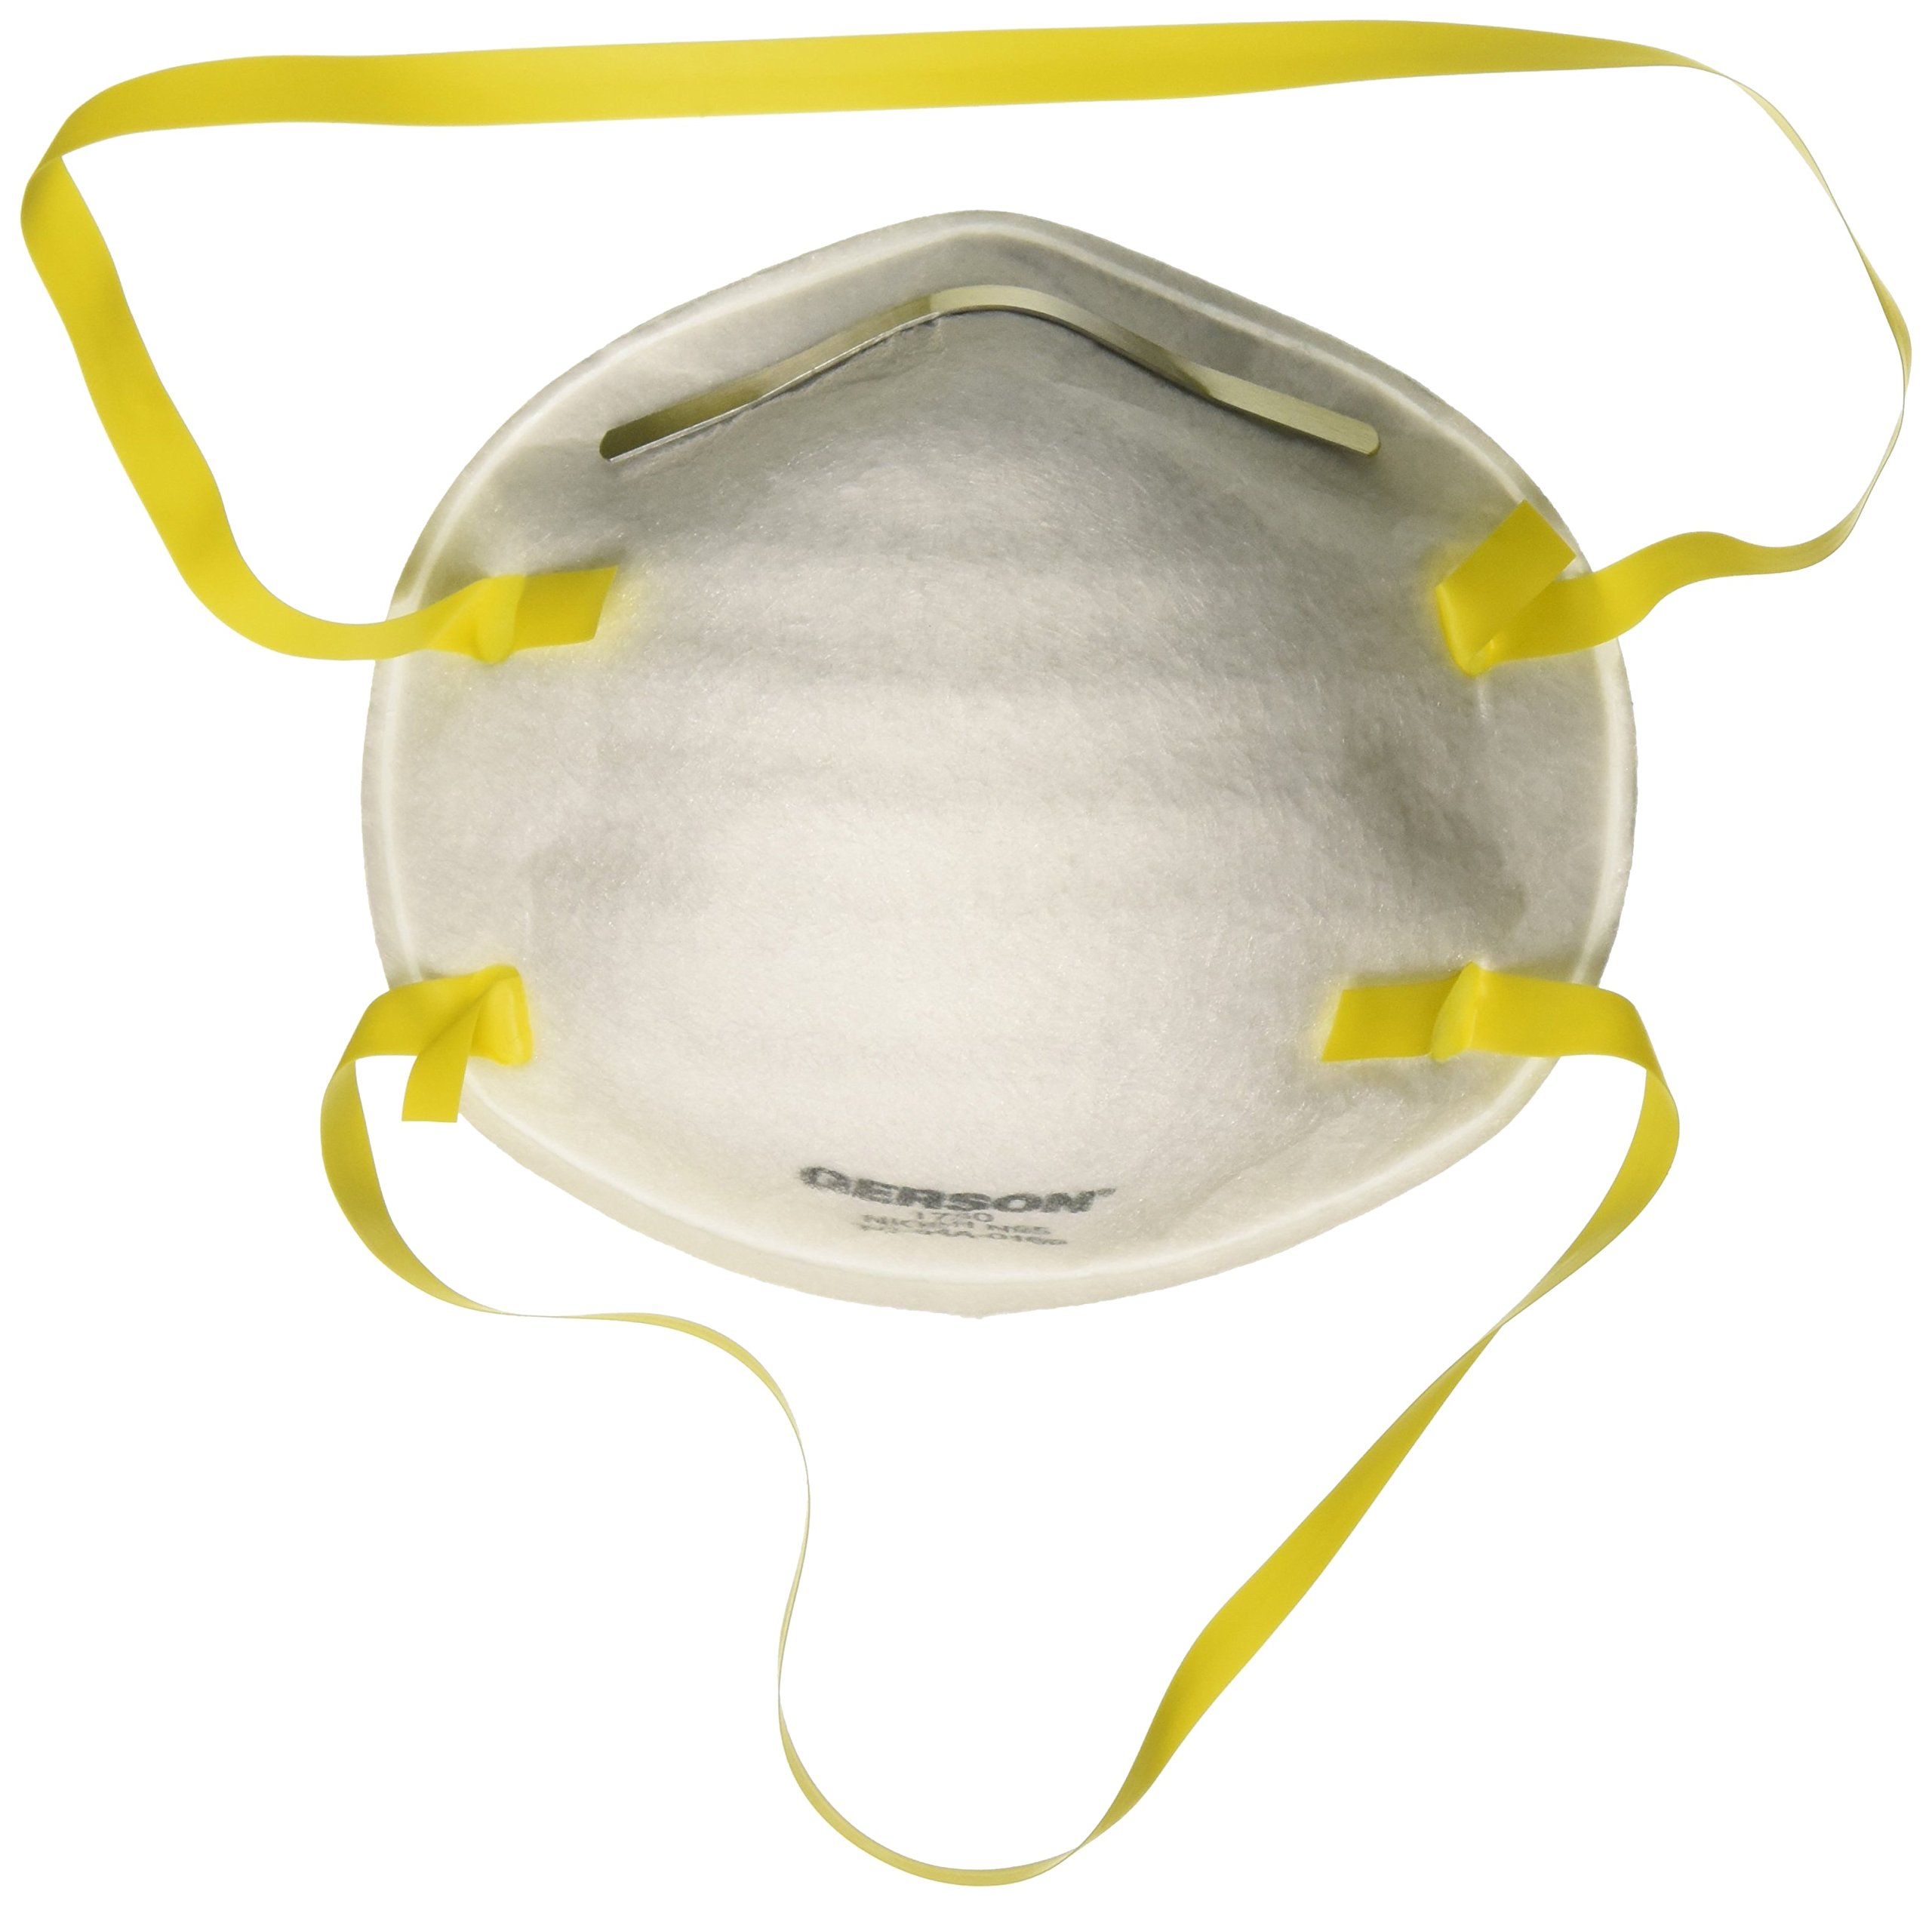 Gerson N95 Disposable Particulate Respirator Surgical Mask Without Valves (Pack of 20) by Gerson